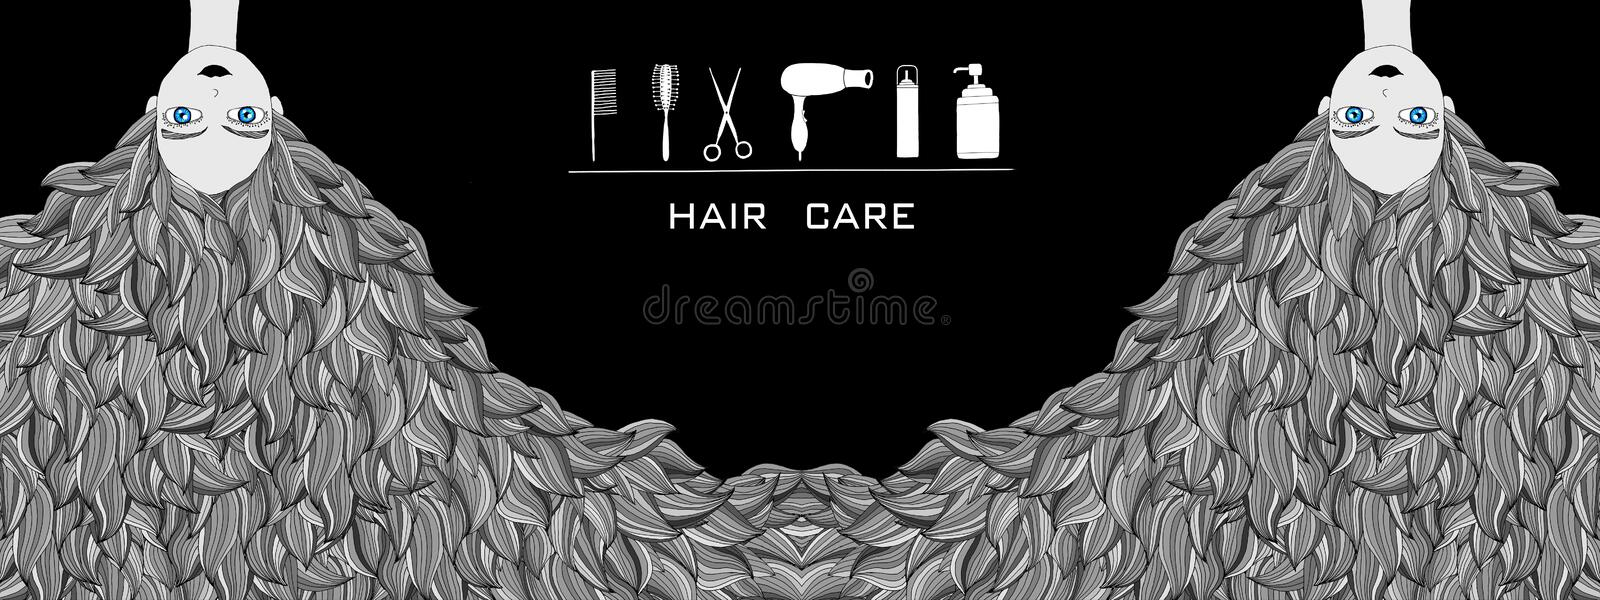 Hair care and hair salon illustration. Illustration of a girl with heavy hair that need haircut and take care of them